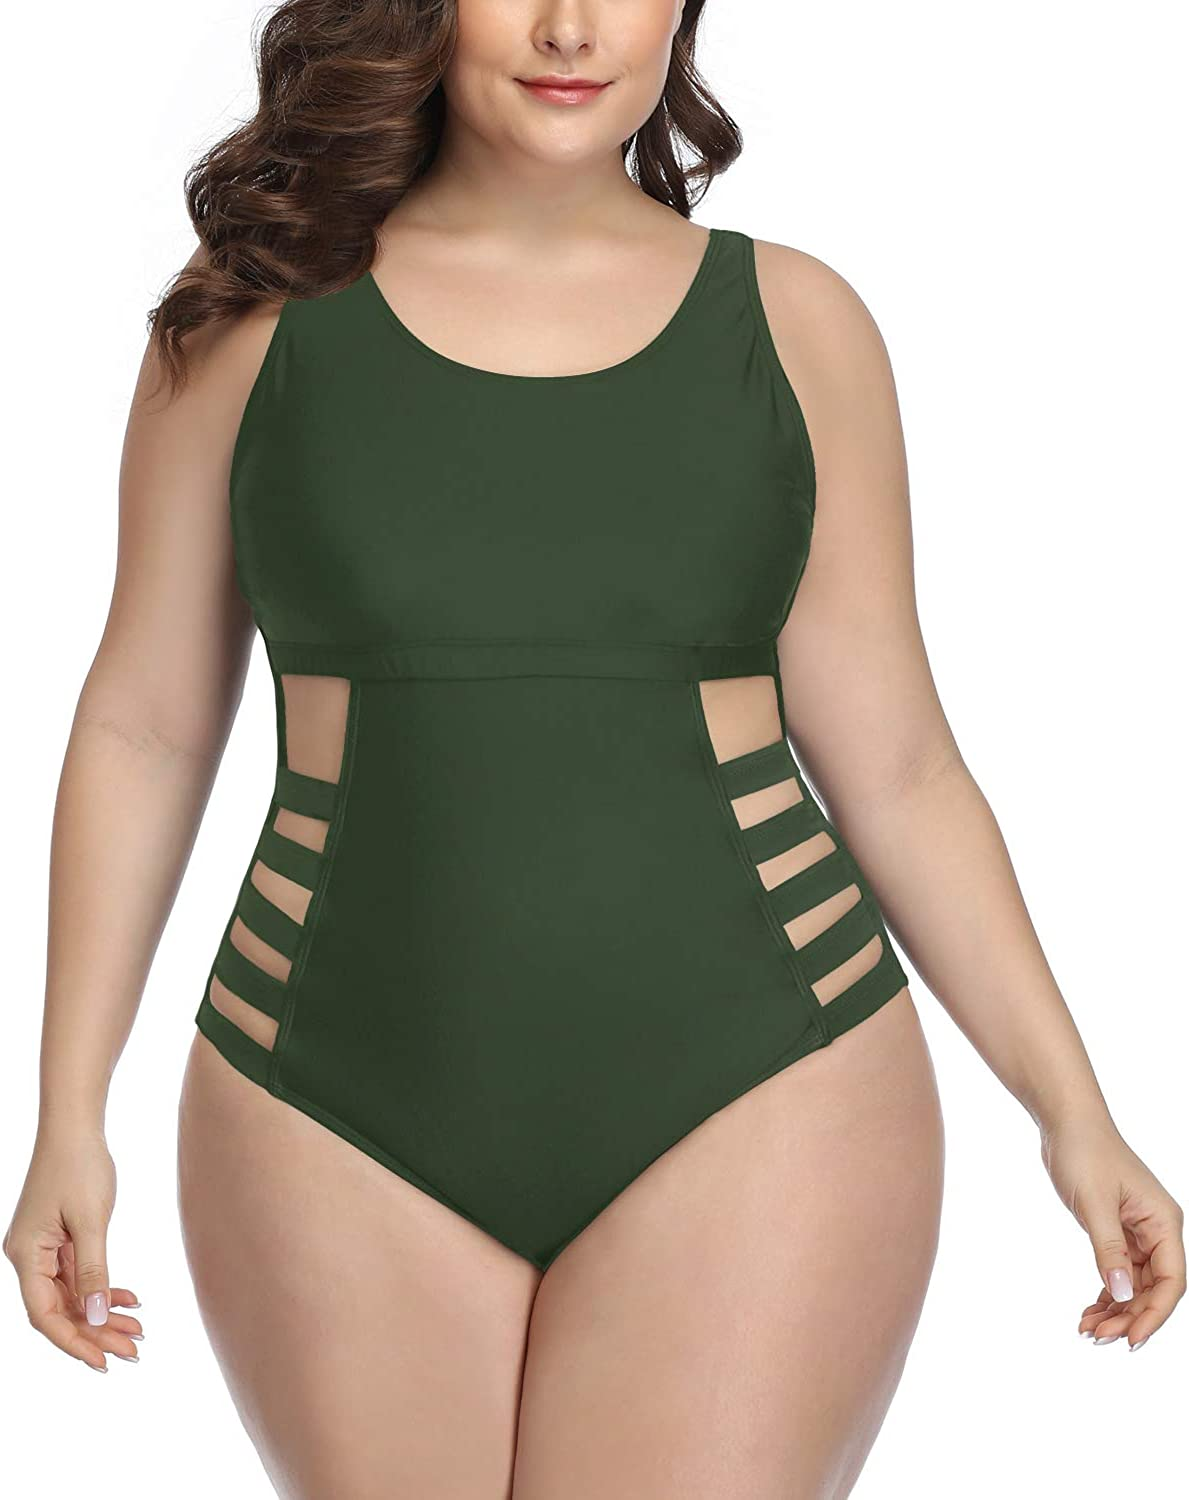 Softcloudy Women Plus Size Strappy Tummy Control Bandage One Piece Swimsuit U Neck Hollow Out Cutout Bathing Suits Swimwear